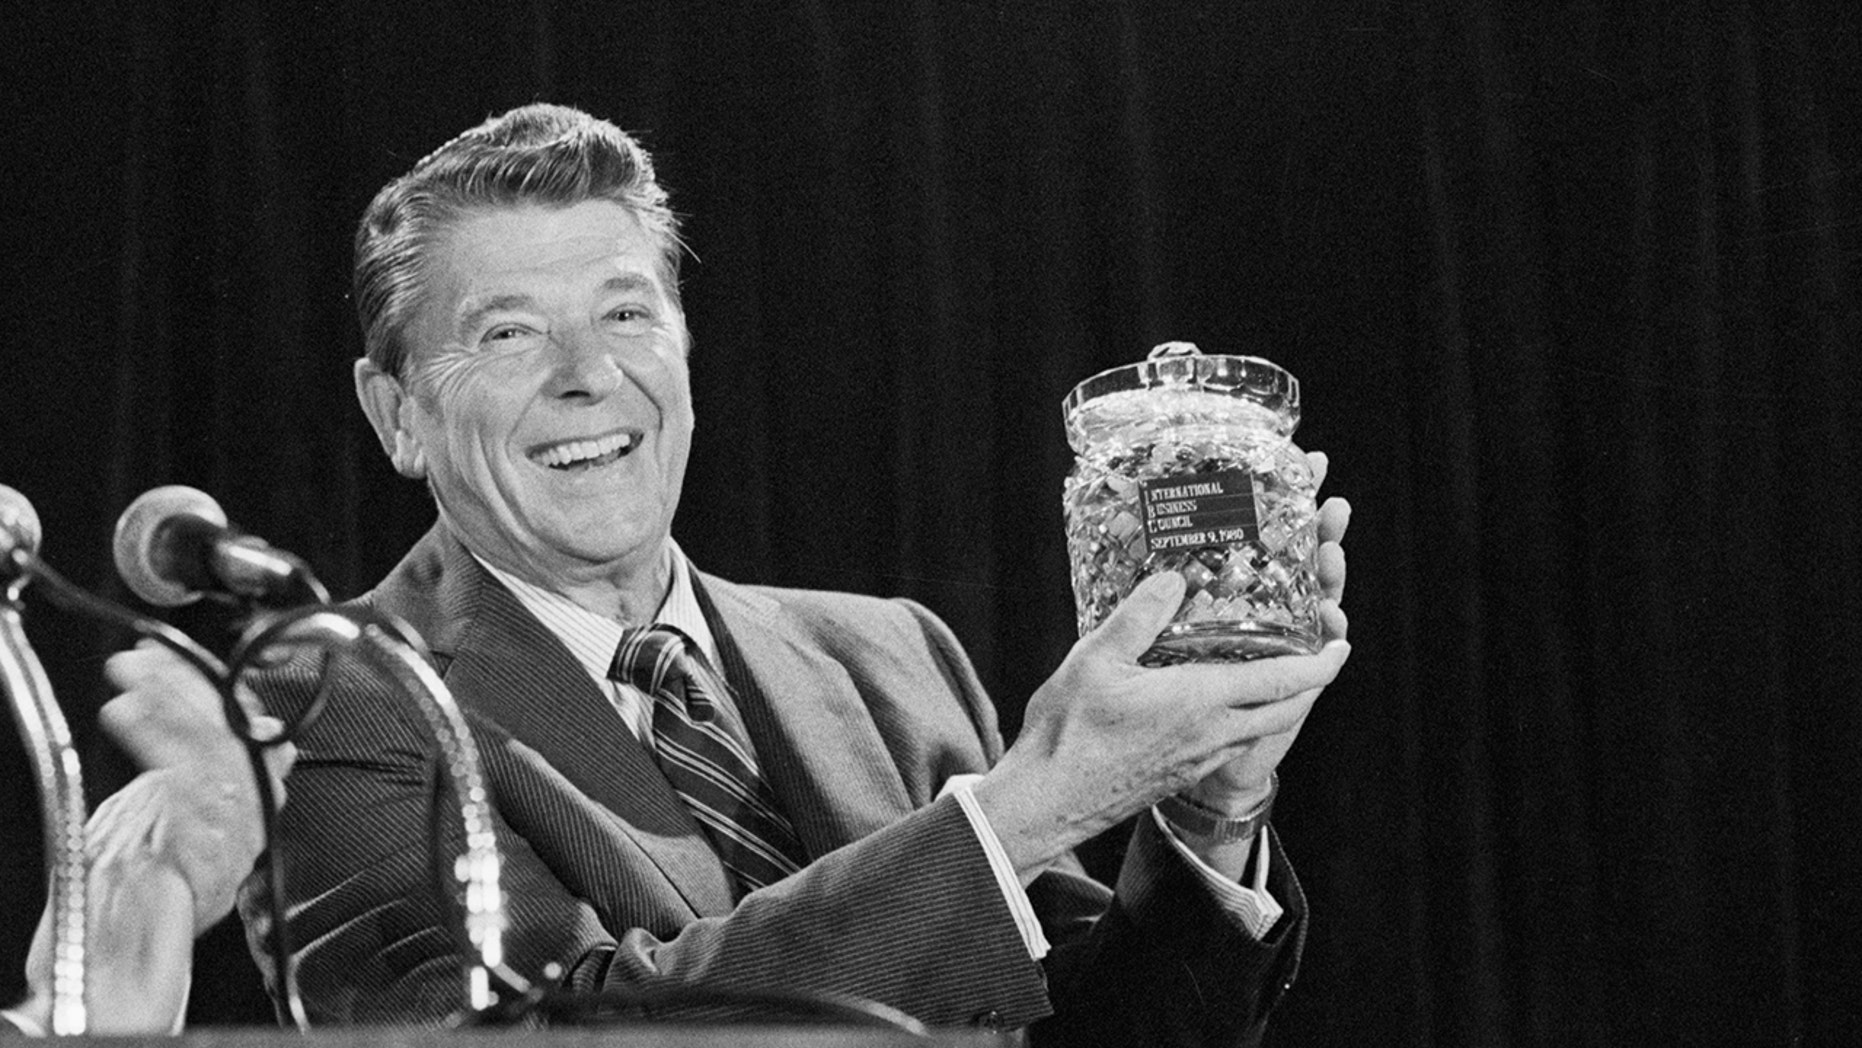 (Original Caption) 9/9/80 - Chicago, Illinois: Republican presidential candidate Ronald Reagan holds a crystal jar of jellybeans presented to him by Clyde Dicky, Jr., president of the International Business Council. (Getty)